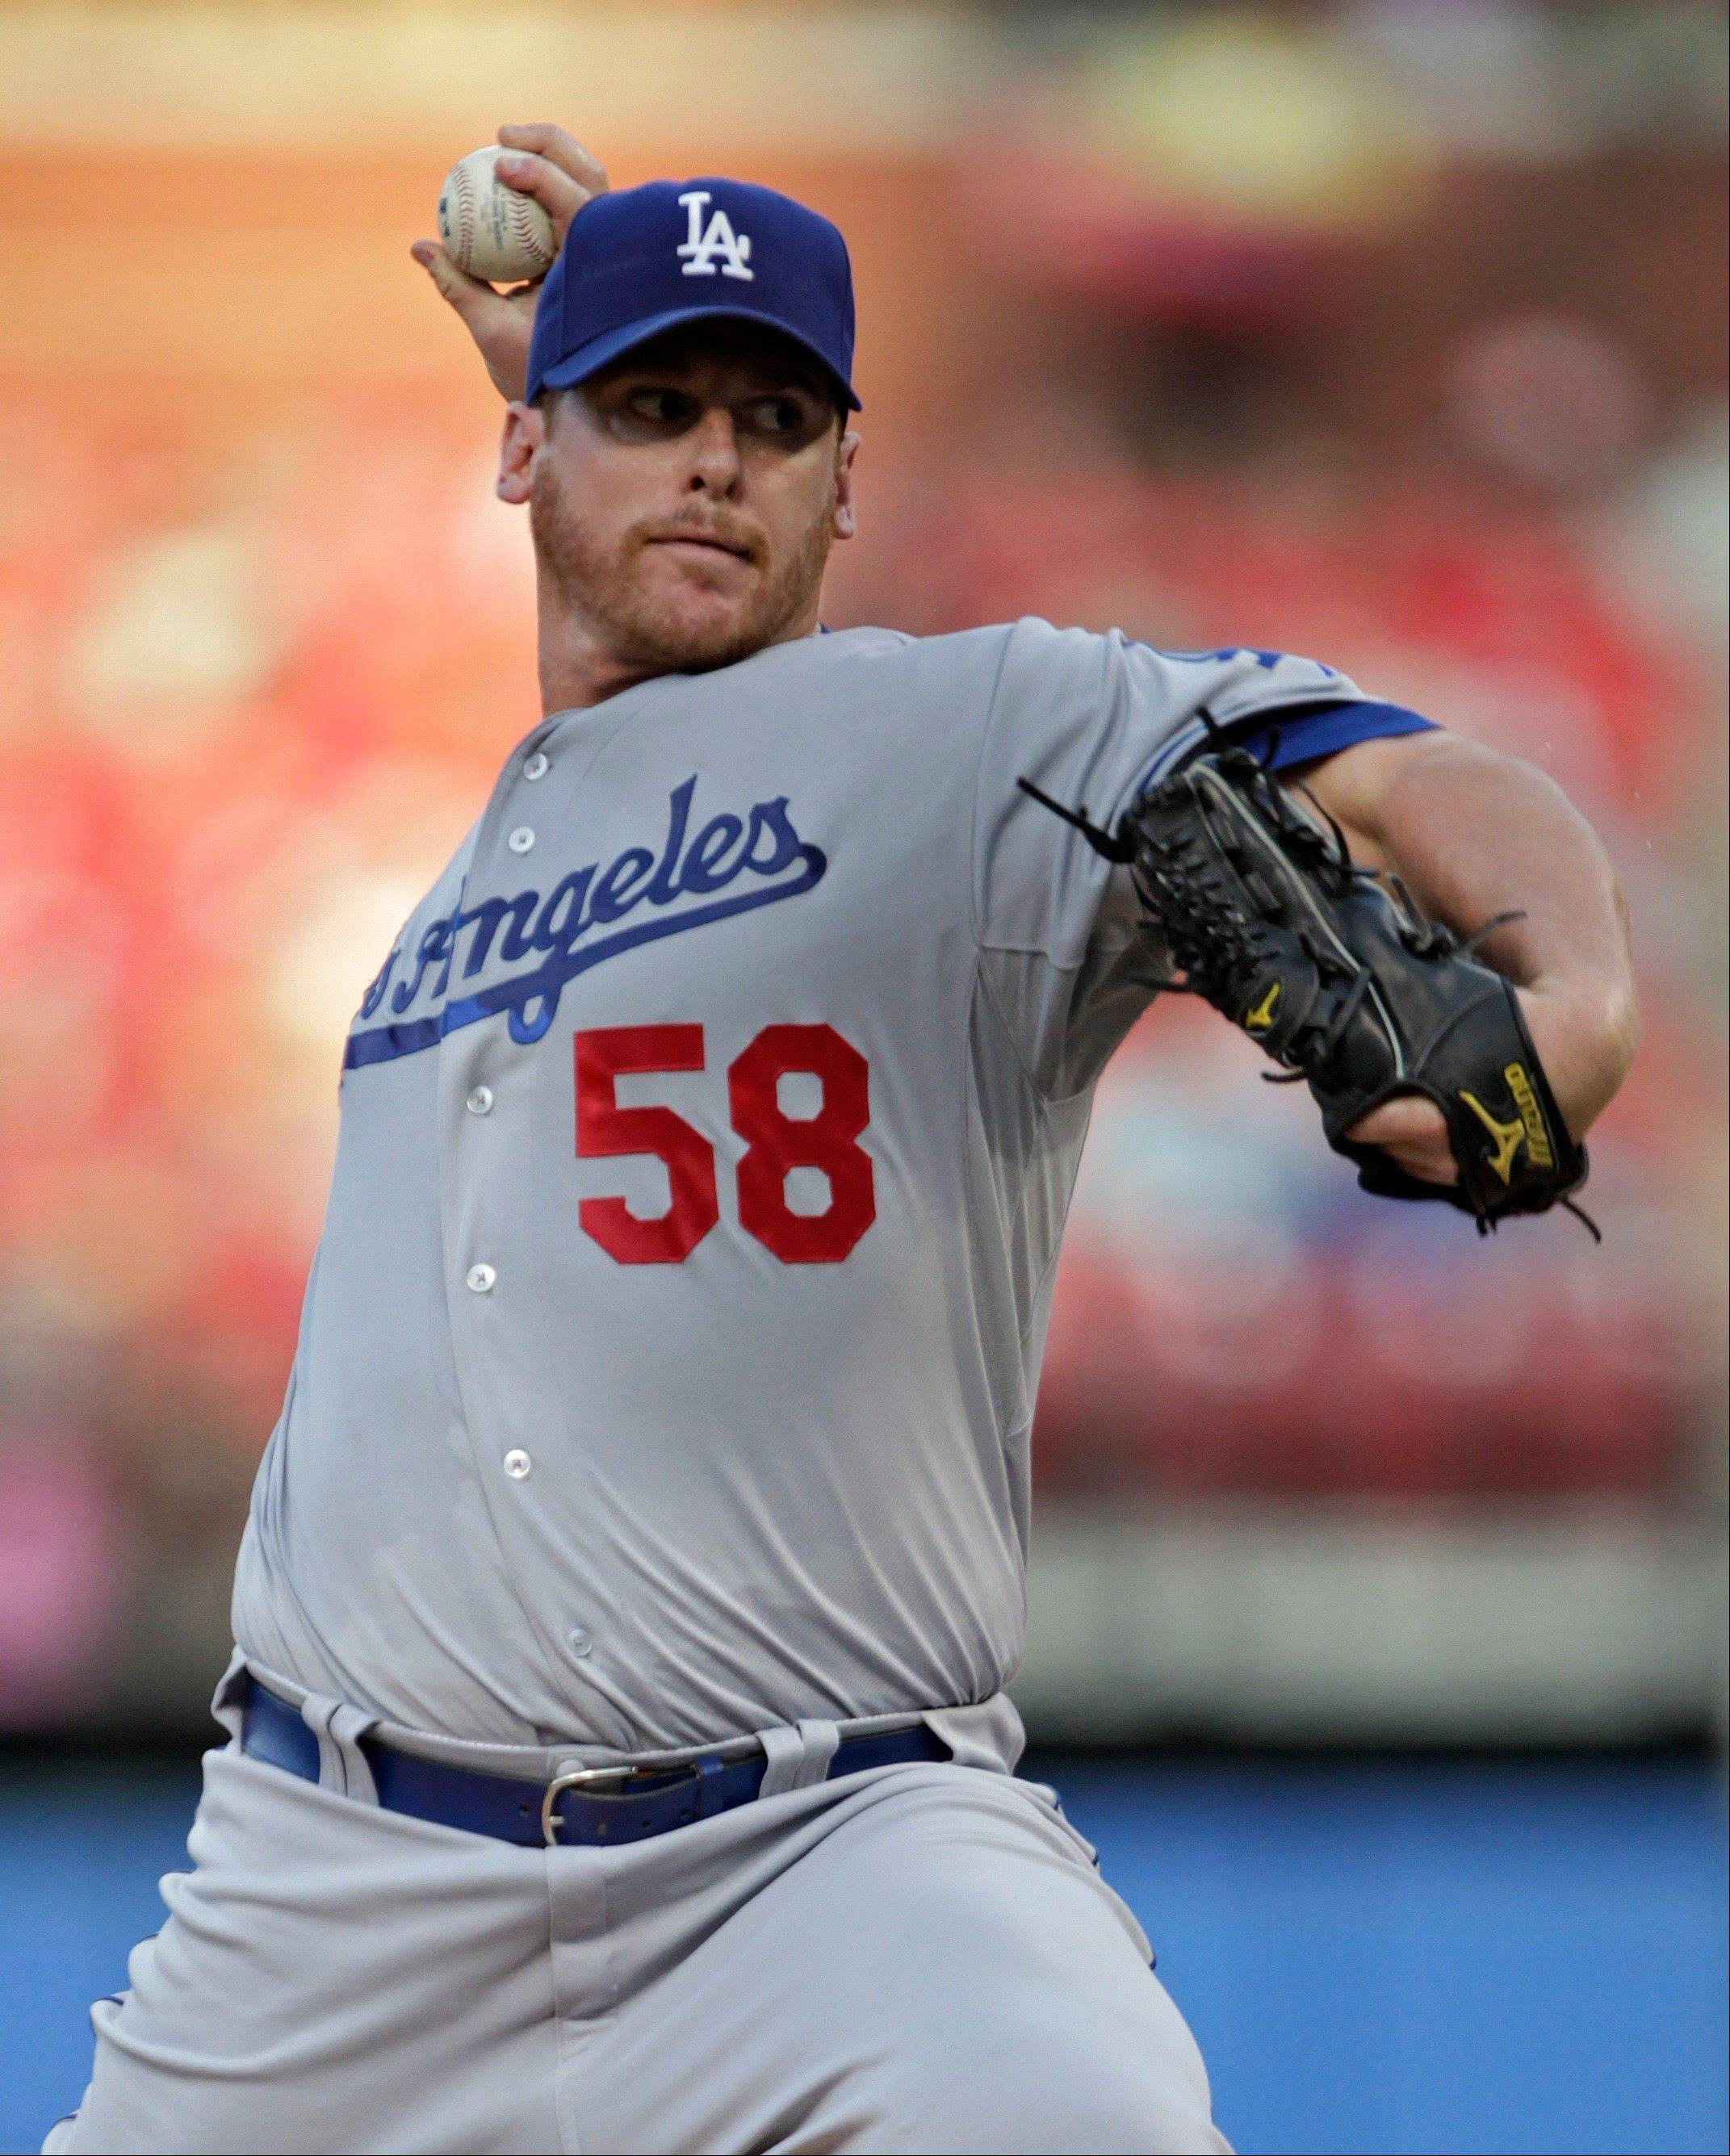 Los Angeles pitcher Chad Billingsley allowed a run and four hits in six innings Monday in St. Louis to win for the first time since June 10.